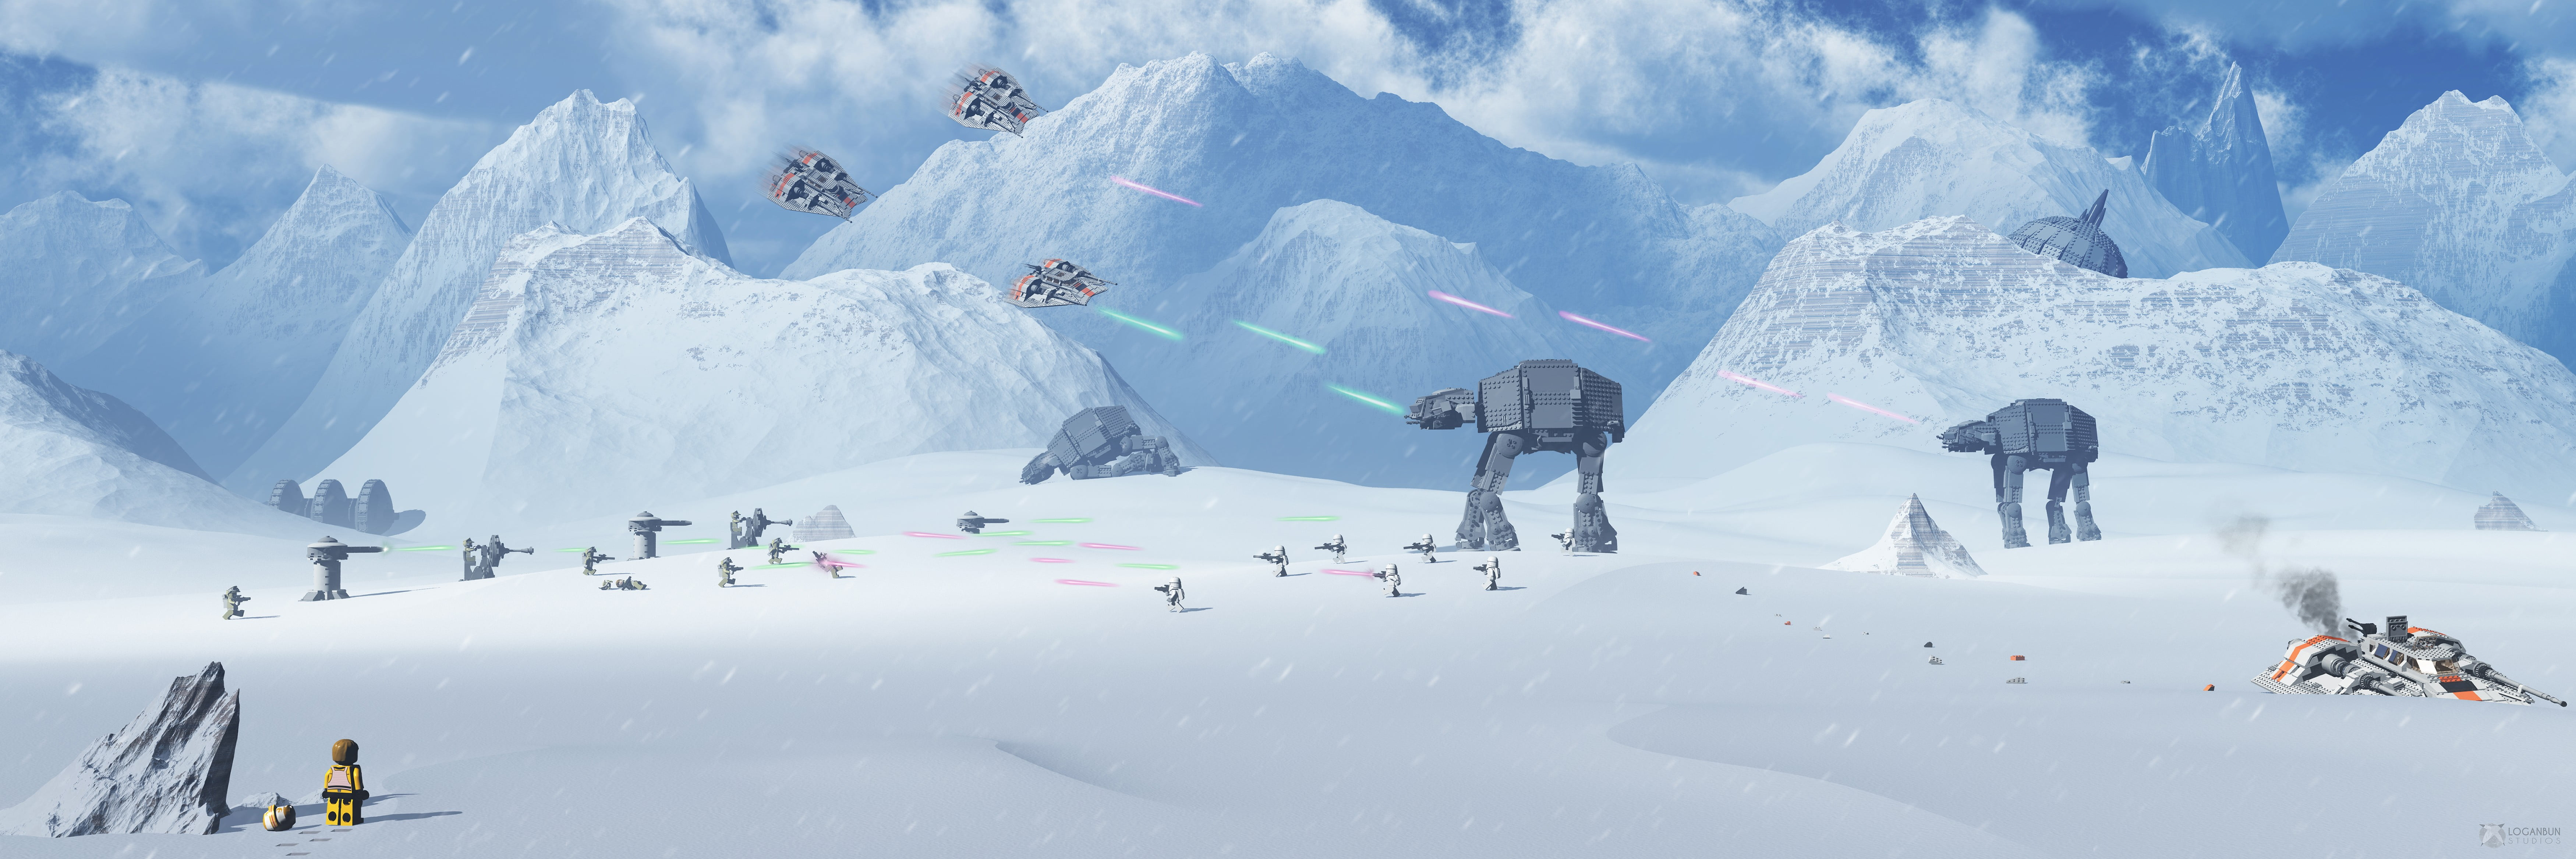 Star Wars Lego Star Wars Battle Of Hoth Atat Snow Star Wars Battle Panoramic 1790336 Hd Wallpaper Backgrounds Download